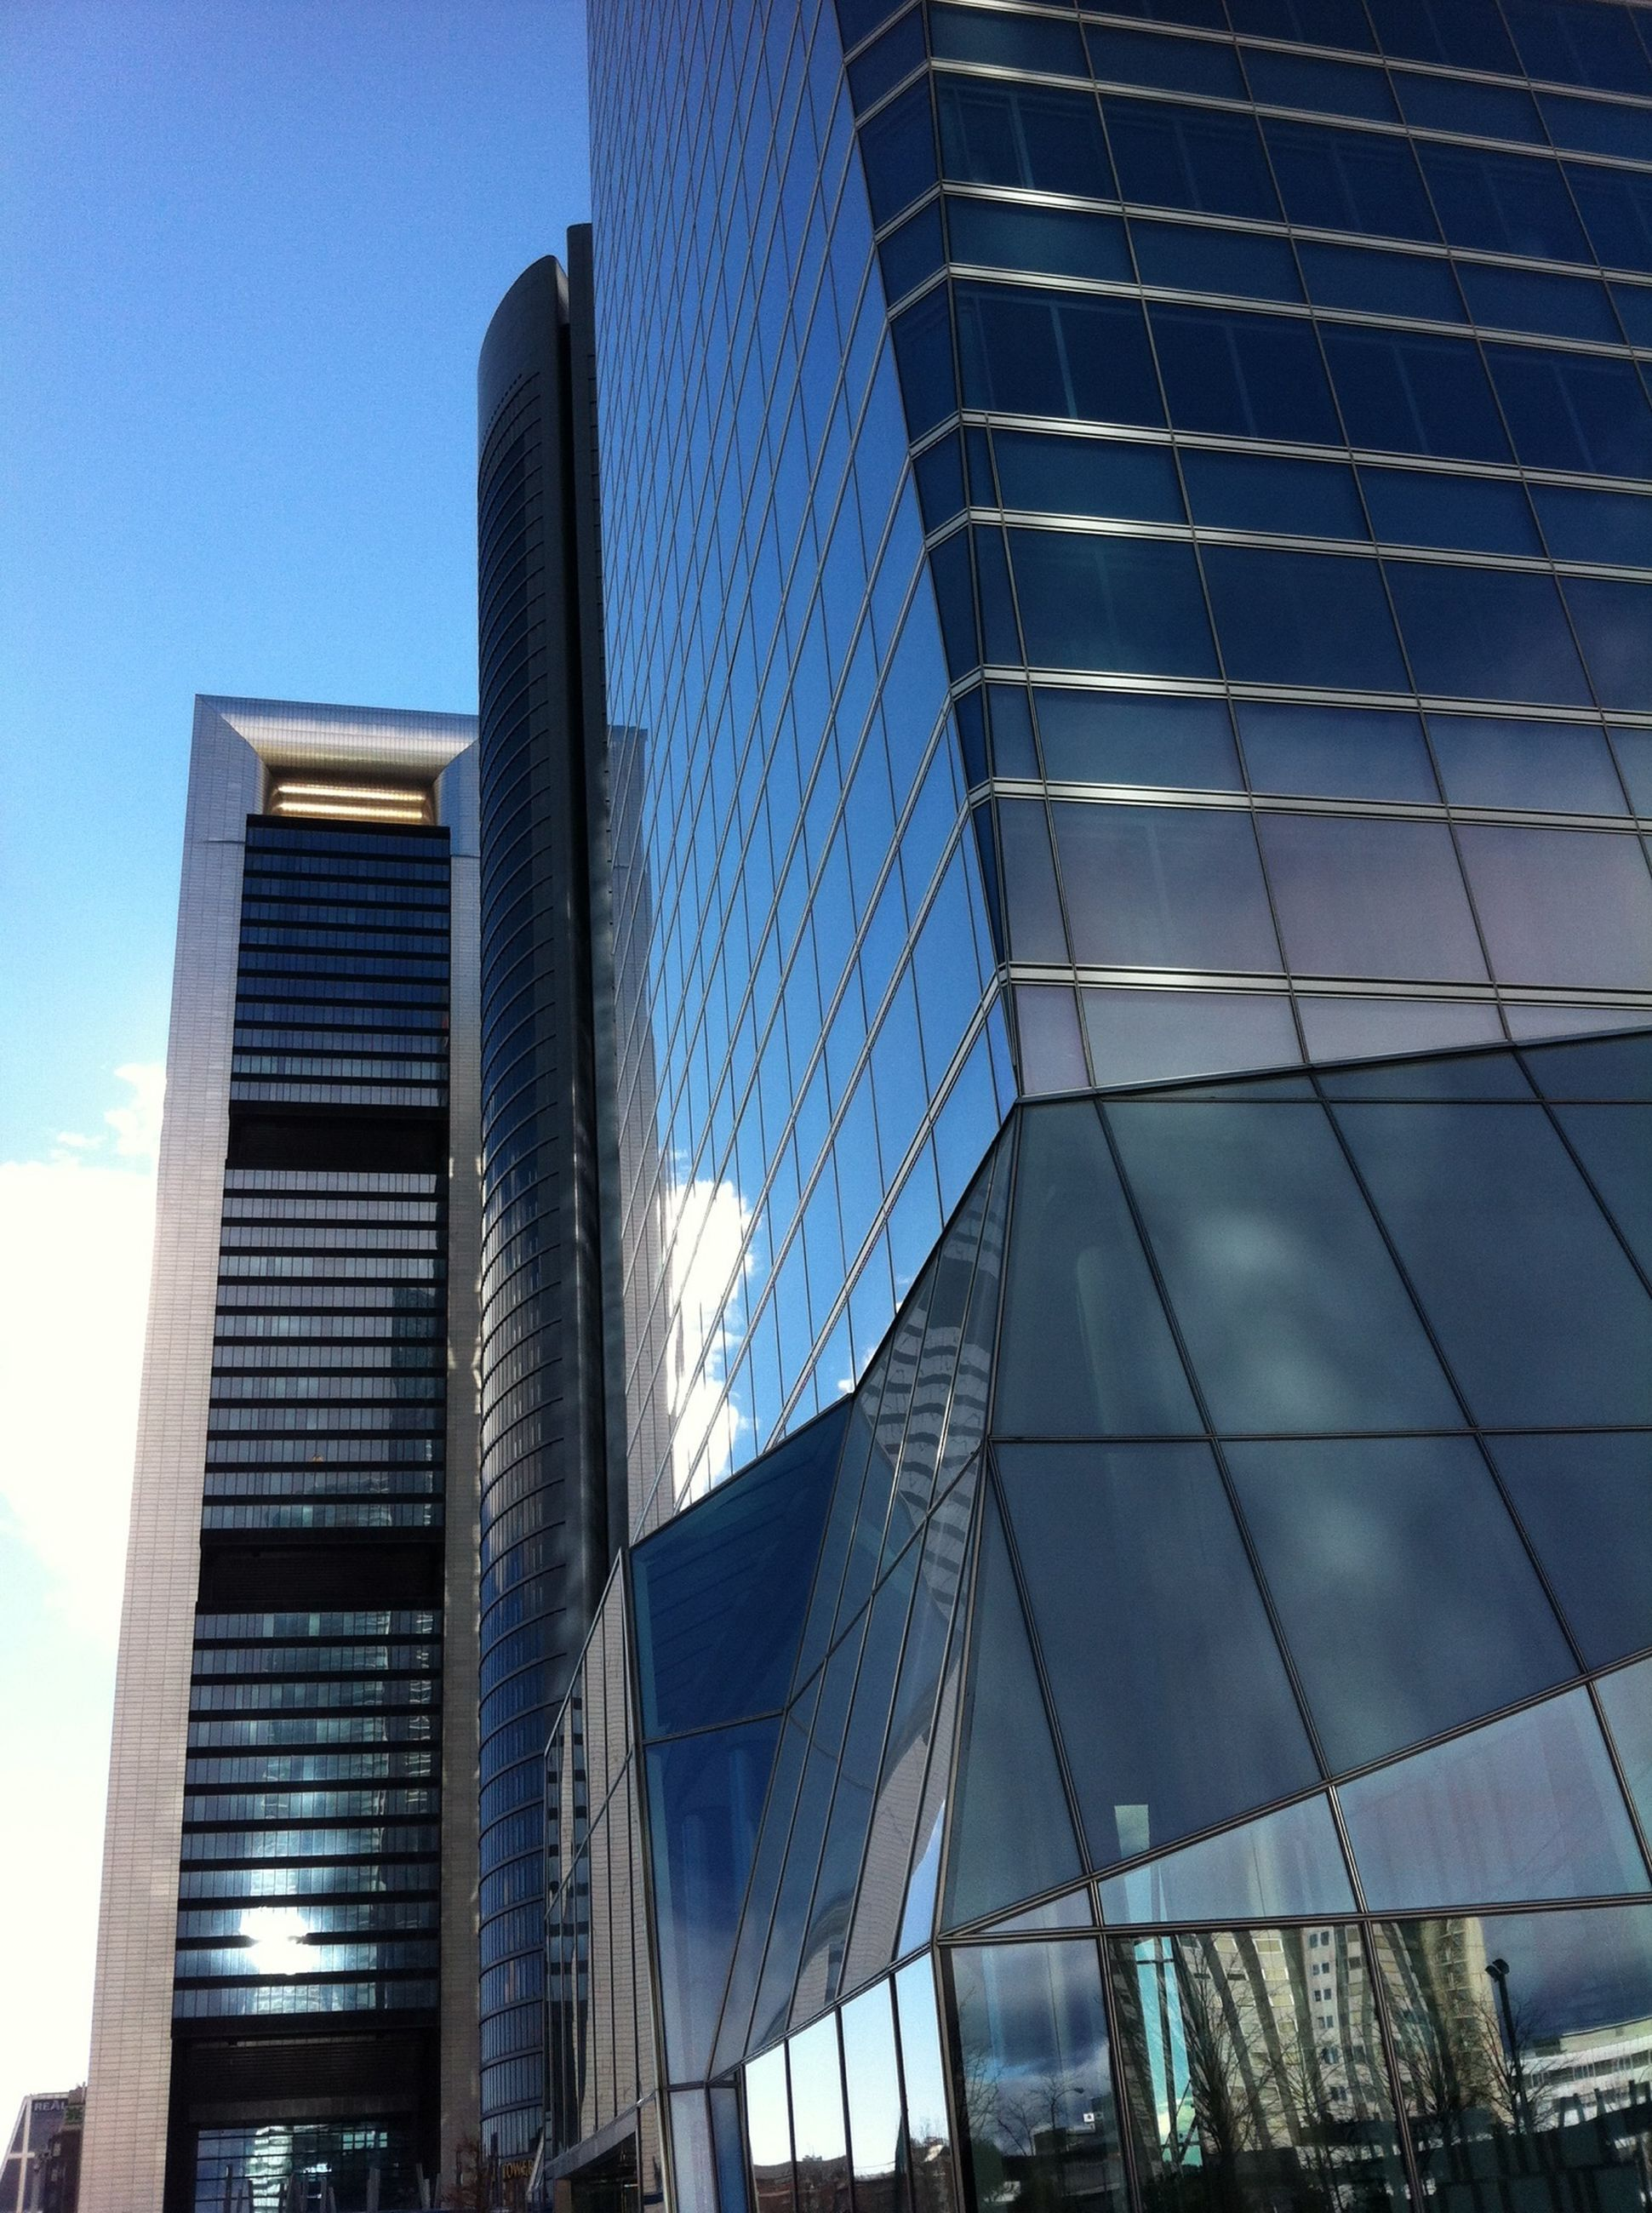 architecture, built structure, building exterior, low angle view, modern, city, office building, skyscraper, building, glass - material, blue, tall - high, sky, reflection, tower, city life, day, outdoors, clear sky, capital cities